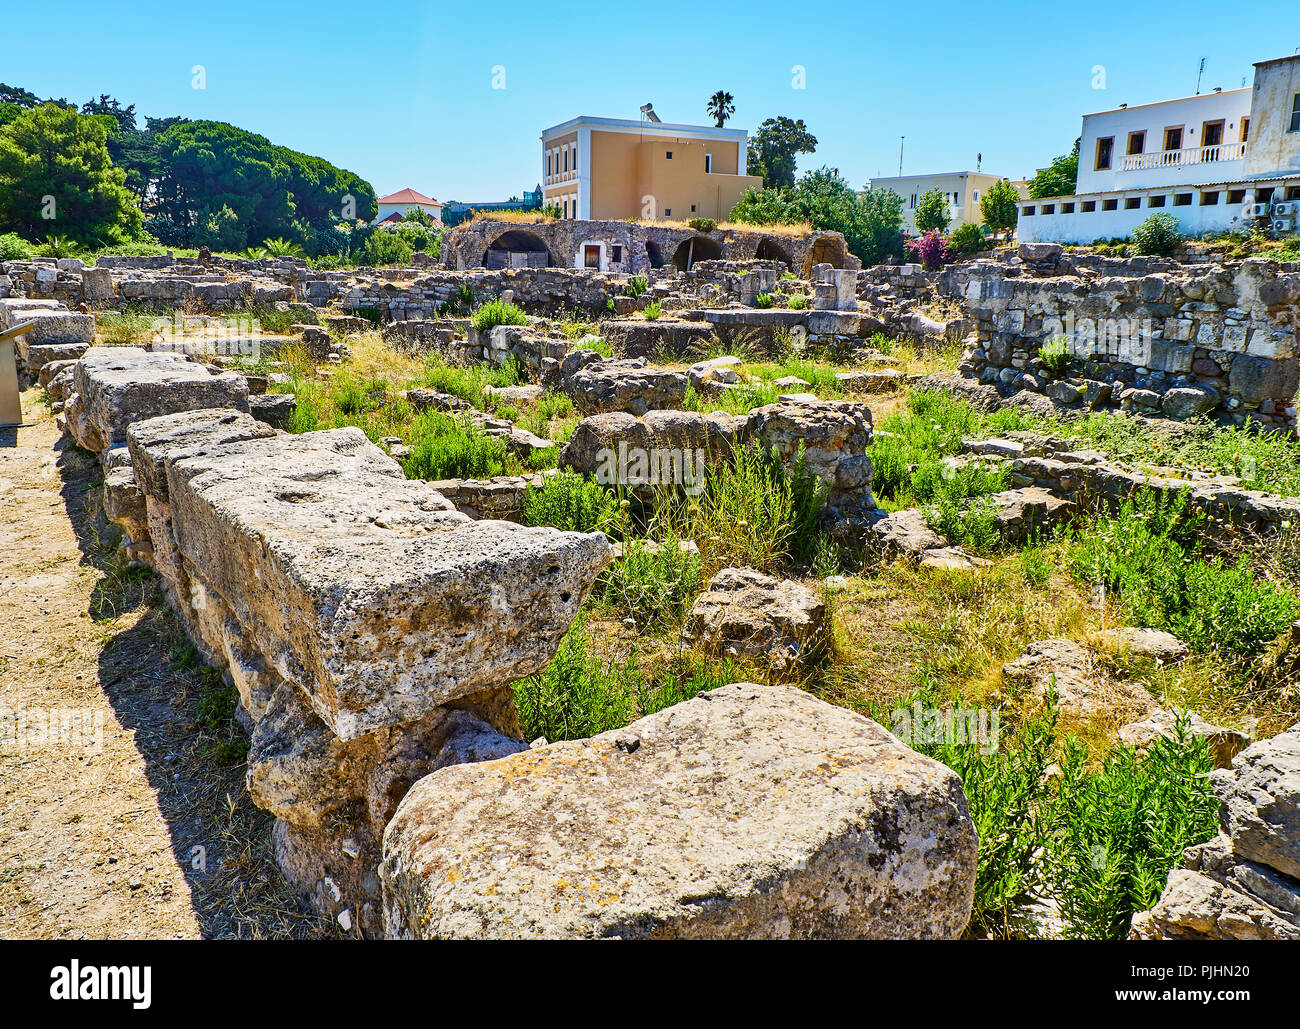 Remains of the Insulae at Ancient Agora of Kos. South Aegean region, Greece. Stock Photo